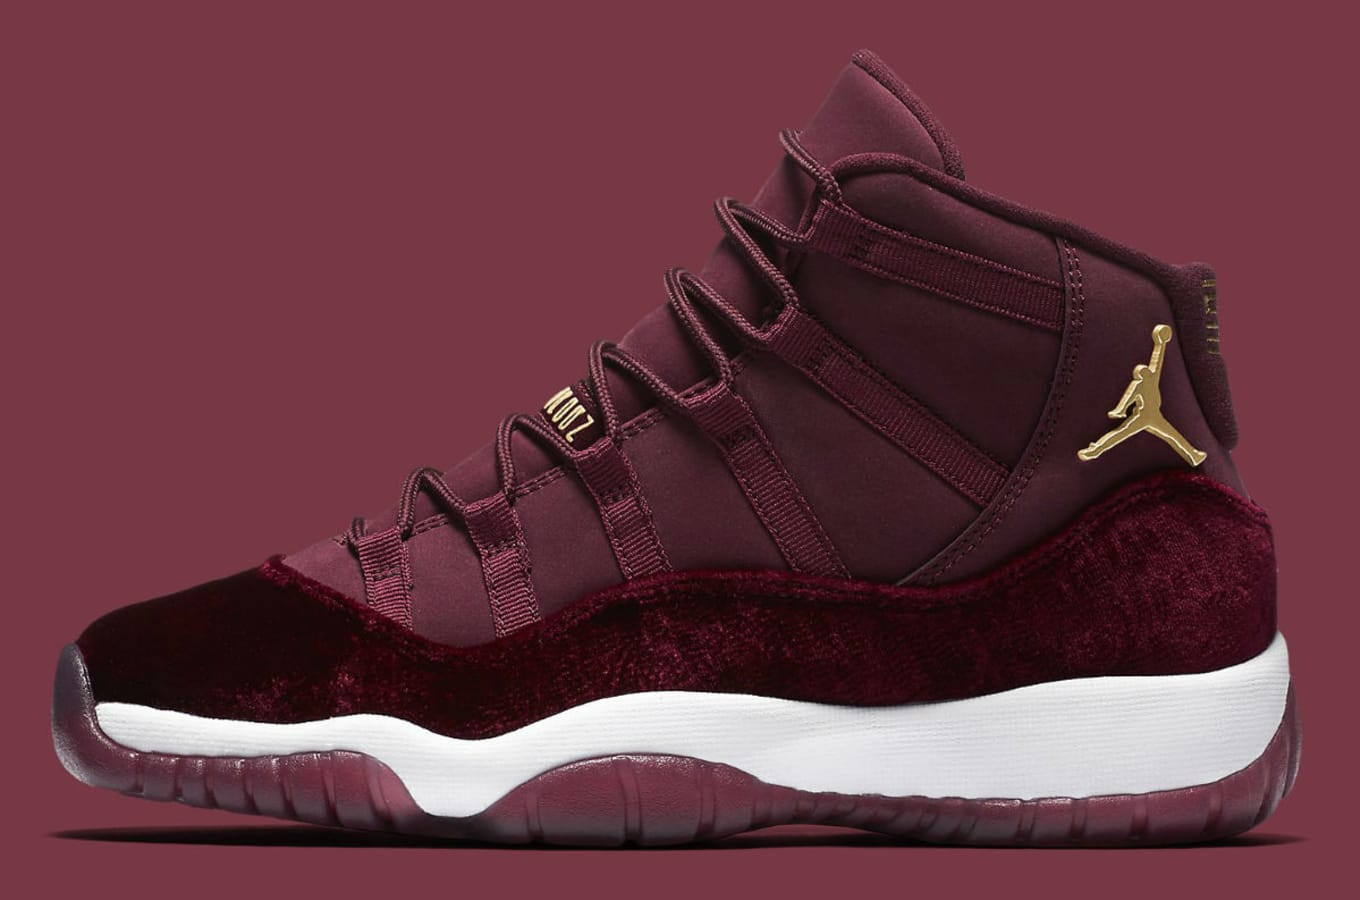 Air Jordan 11 GG Red Velvet Heiress Release Date 852625-650  cedcaa25e888